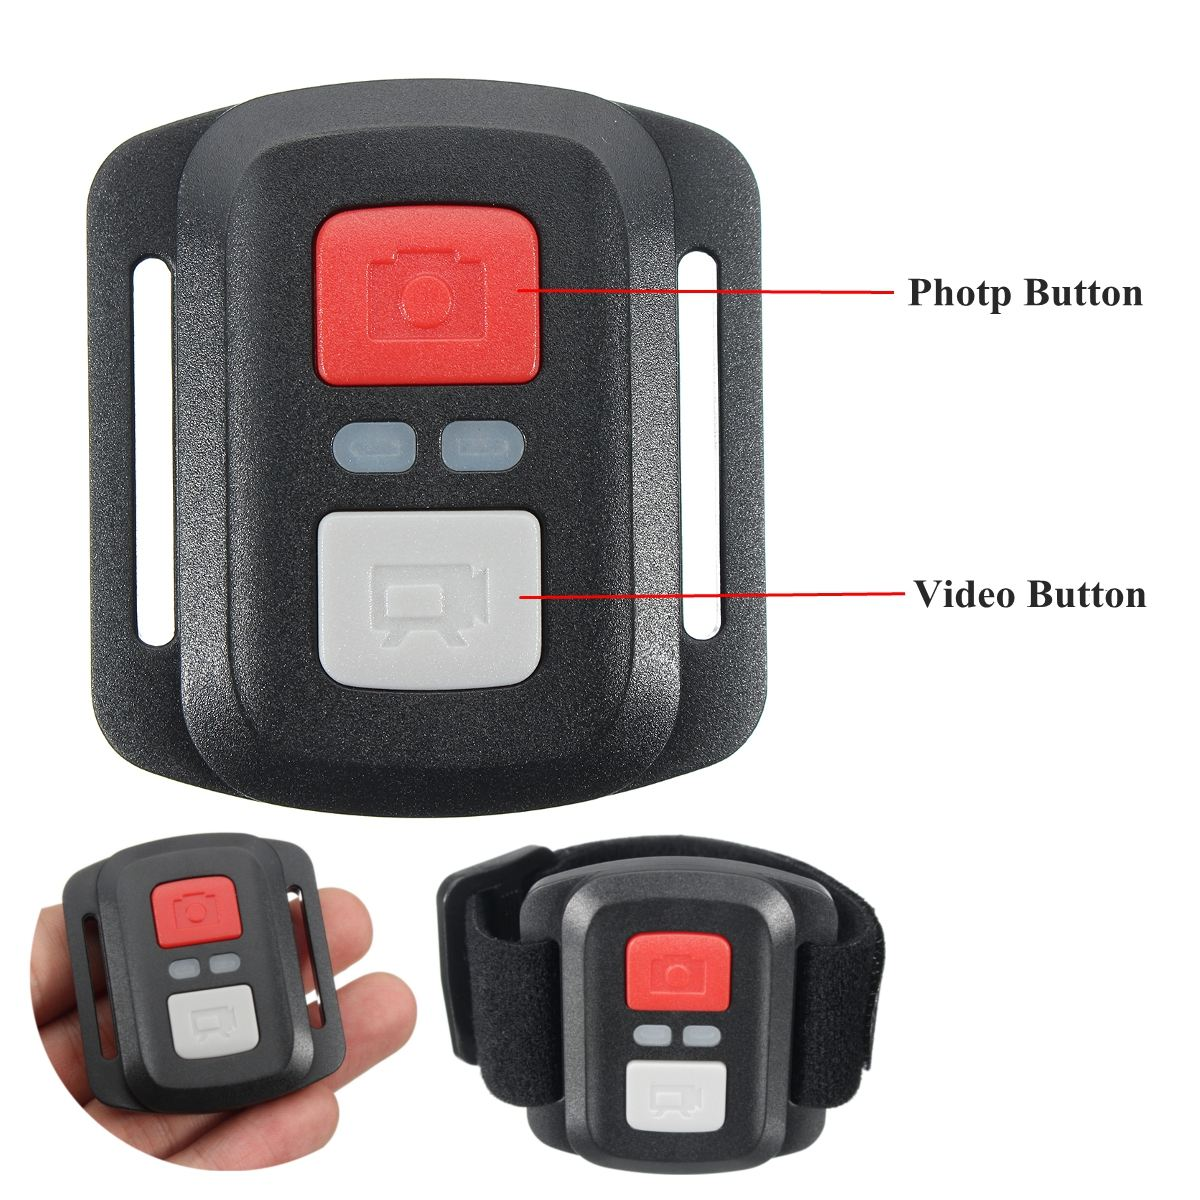 Waterproof Sports Camera Action Camera Accessories 2.4G Remote Control Plastic Black Support for EKEN H9R/H9R plus/H6S/H8RPlus-2